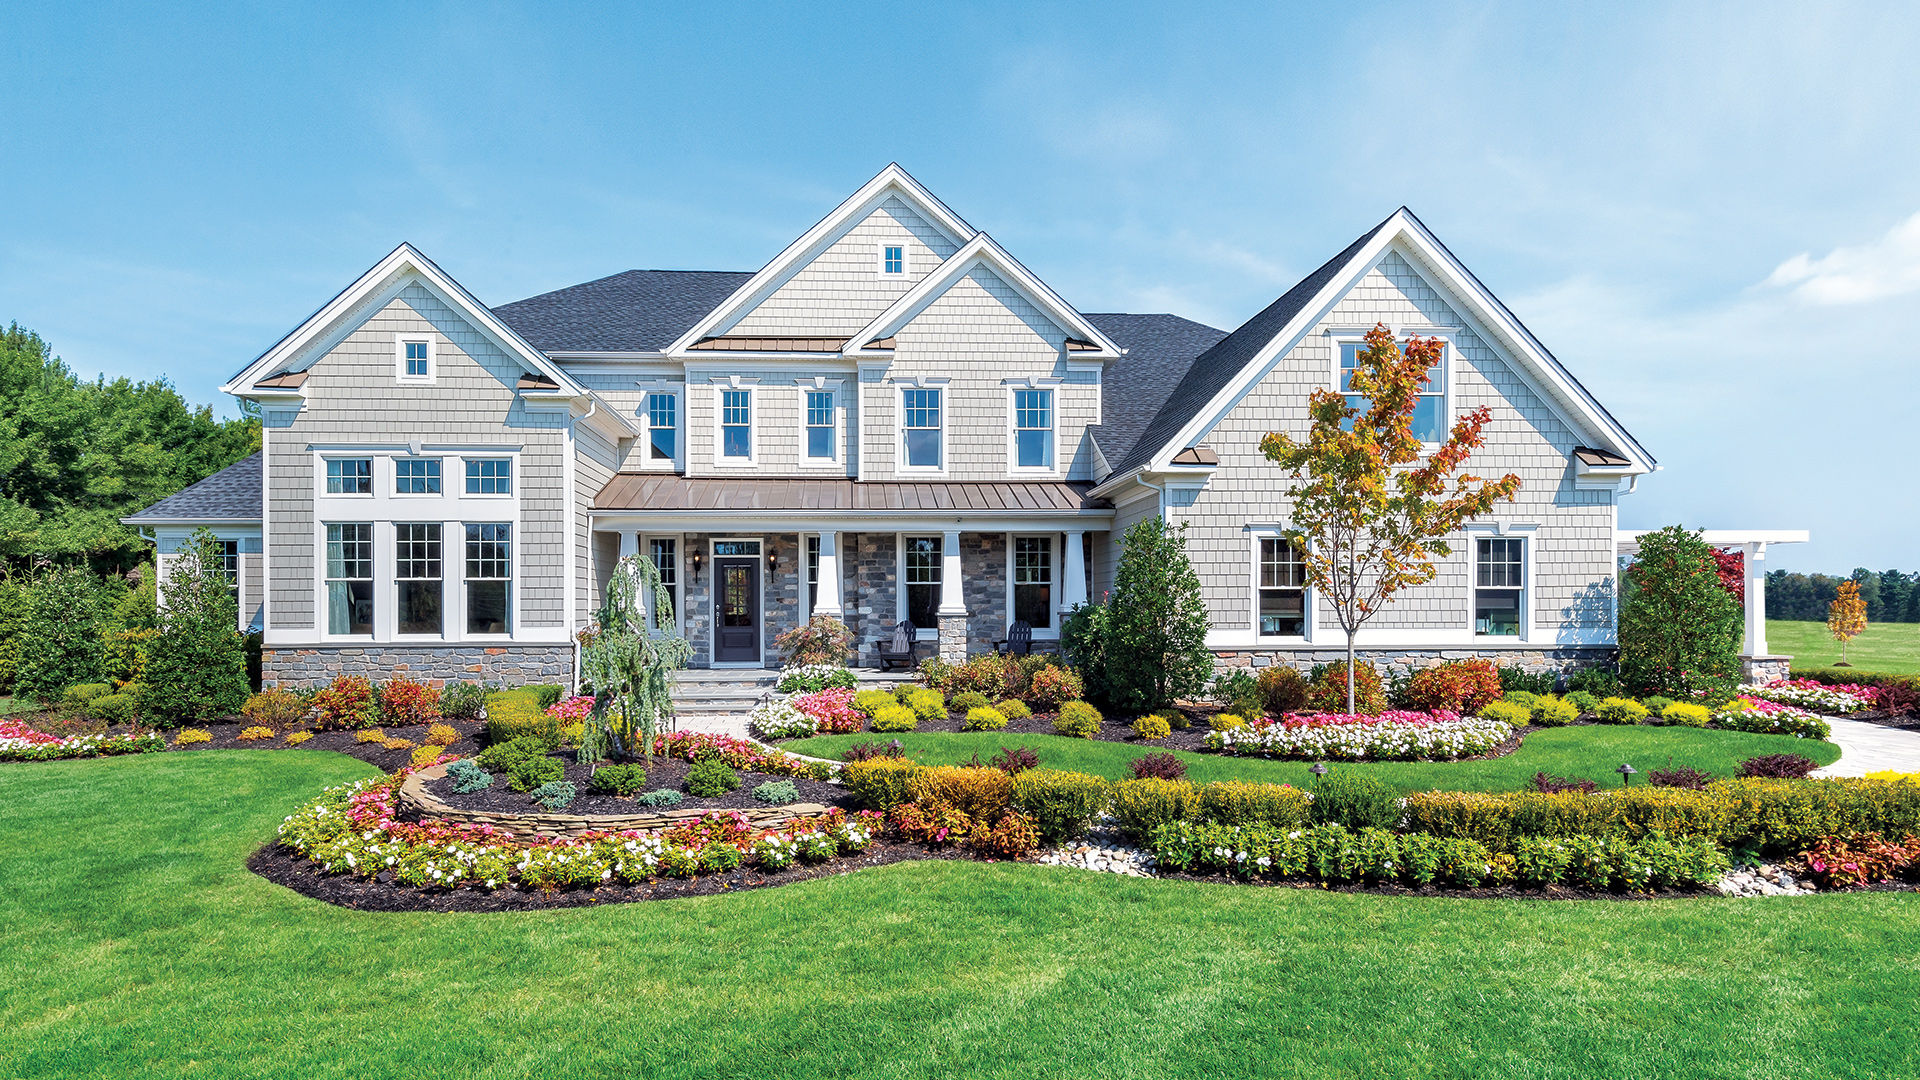 Hampton model home with professional landscaping